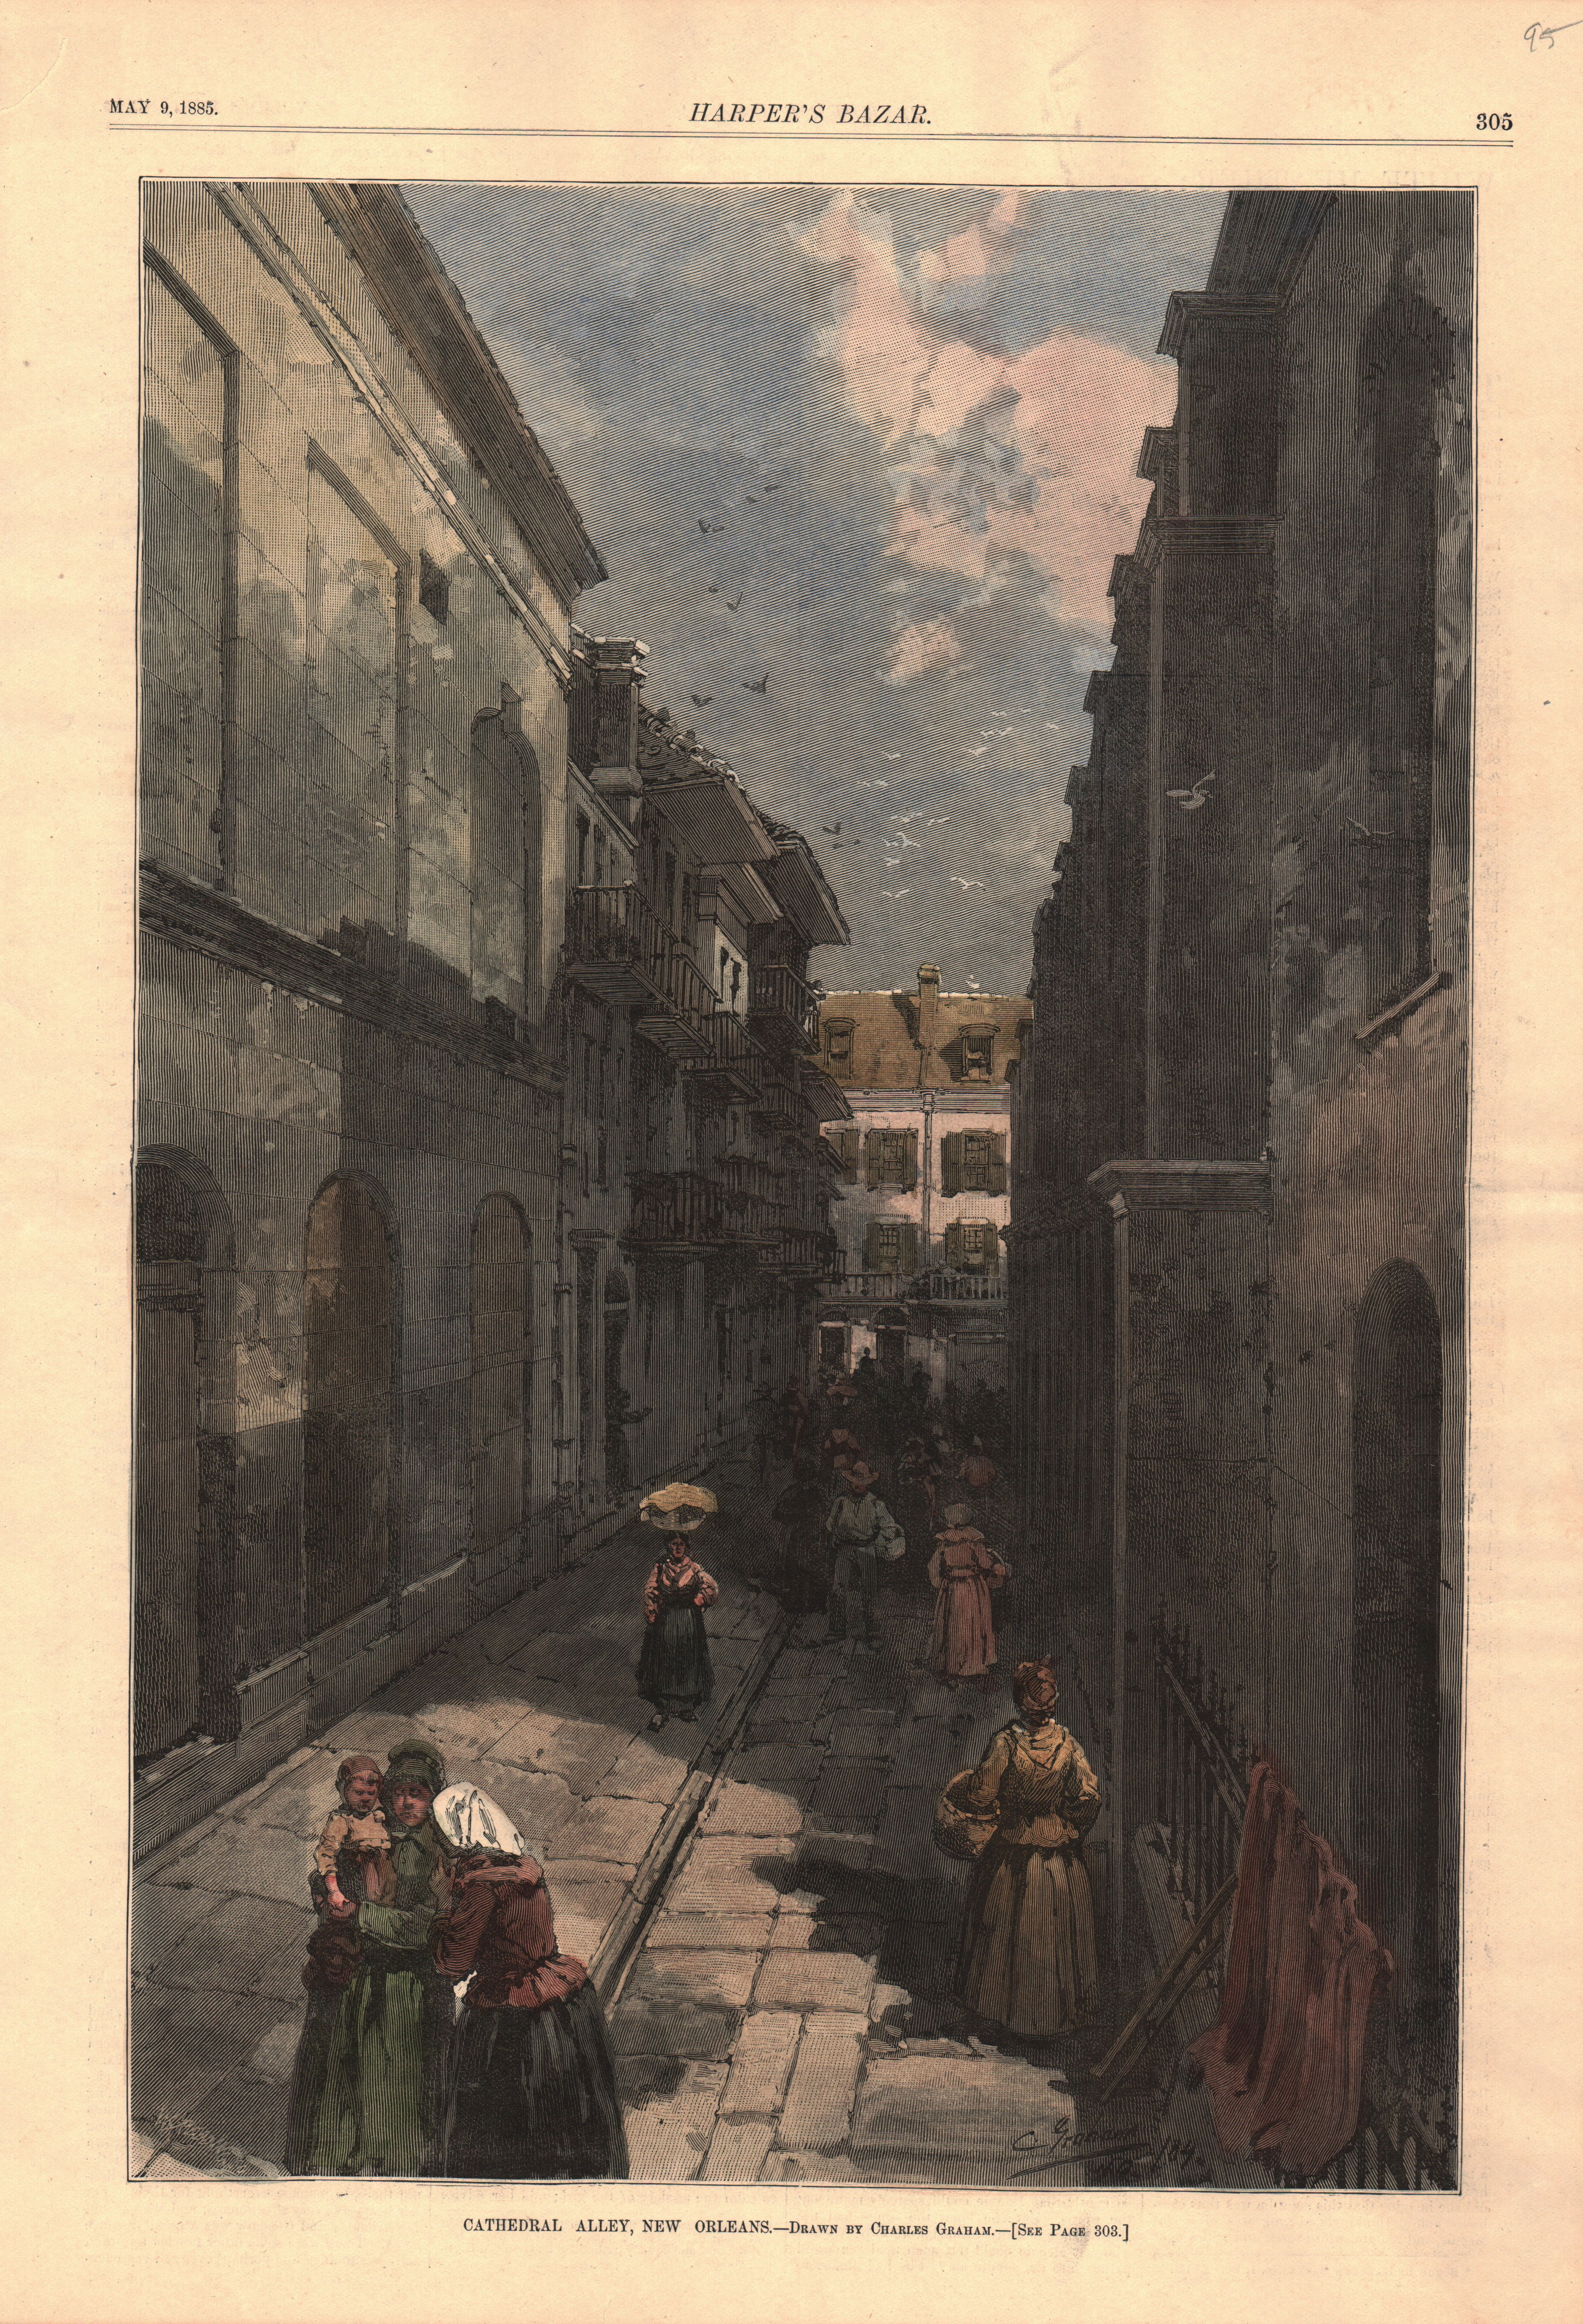 Cathedral Alley, New Orleans